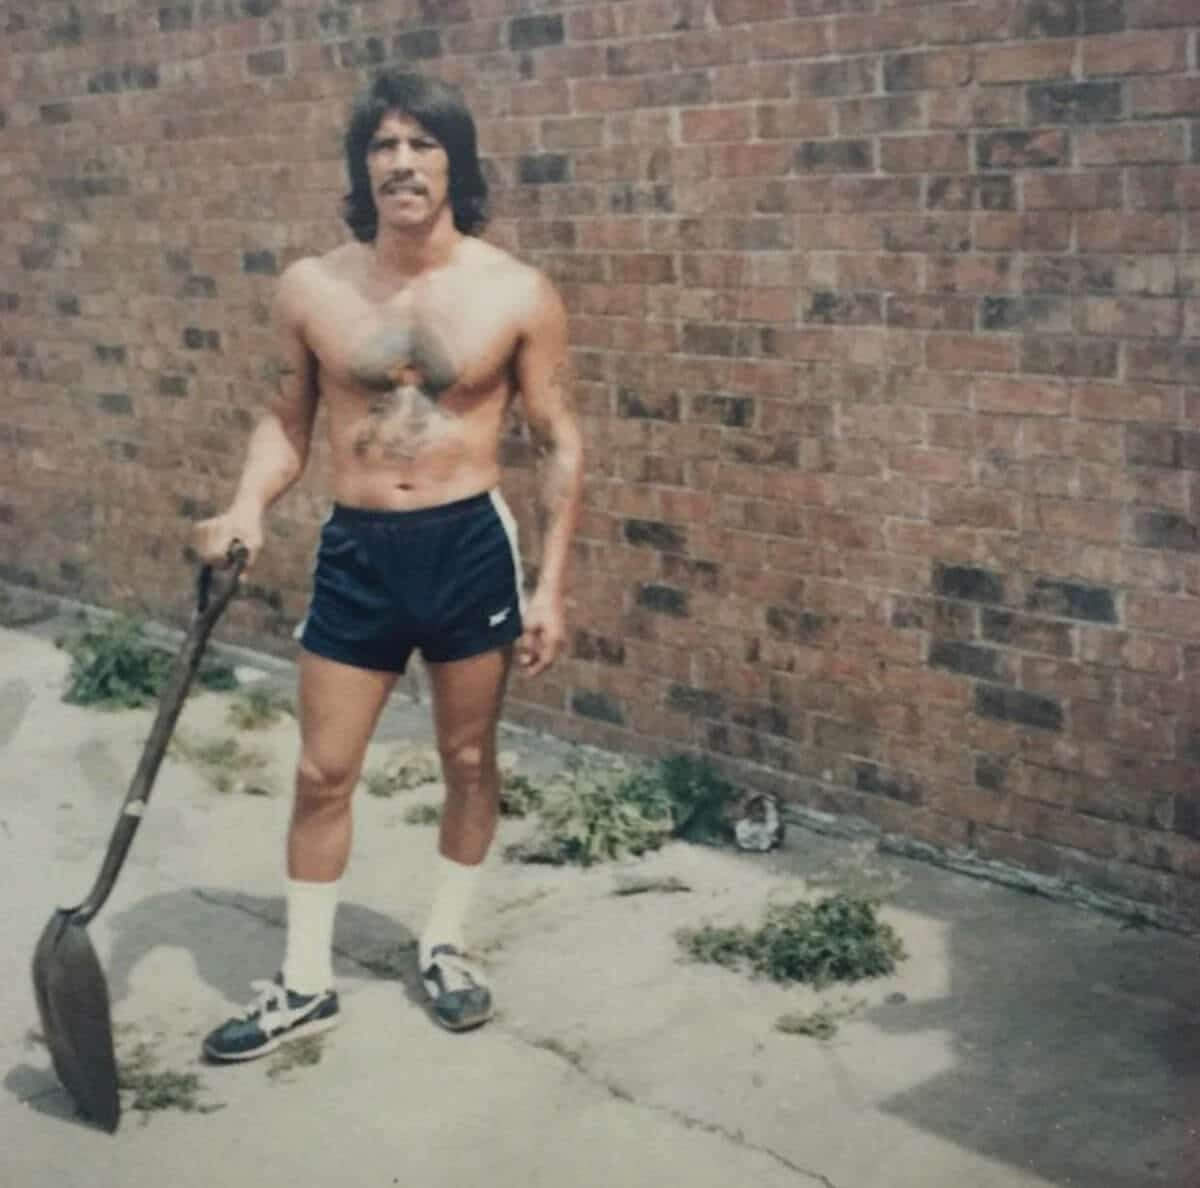 Danny Trejo doing some landscape work in 1980, five years before he broke into the film industry